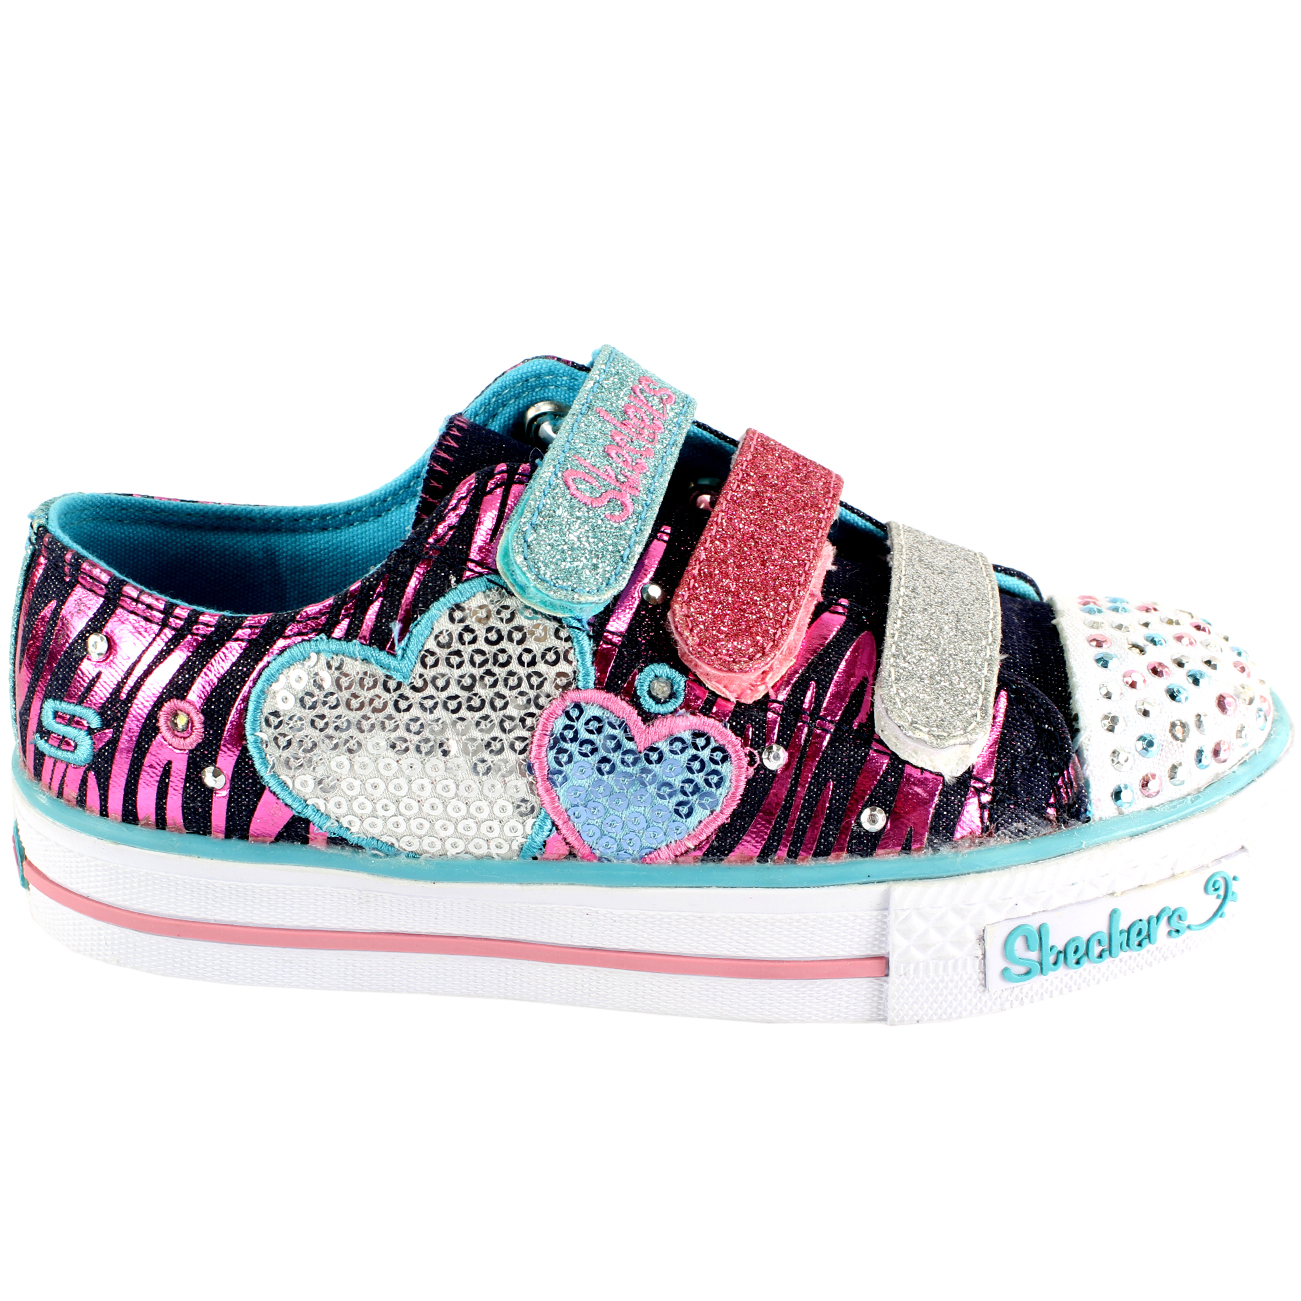 ee8f82ca446c Kids Girls Skechers Triple Time Twinkle Toes Velcro Light Up Trainers UK  9.5-6